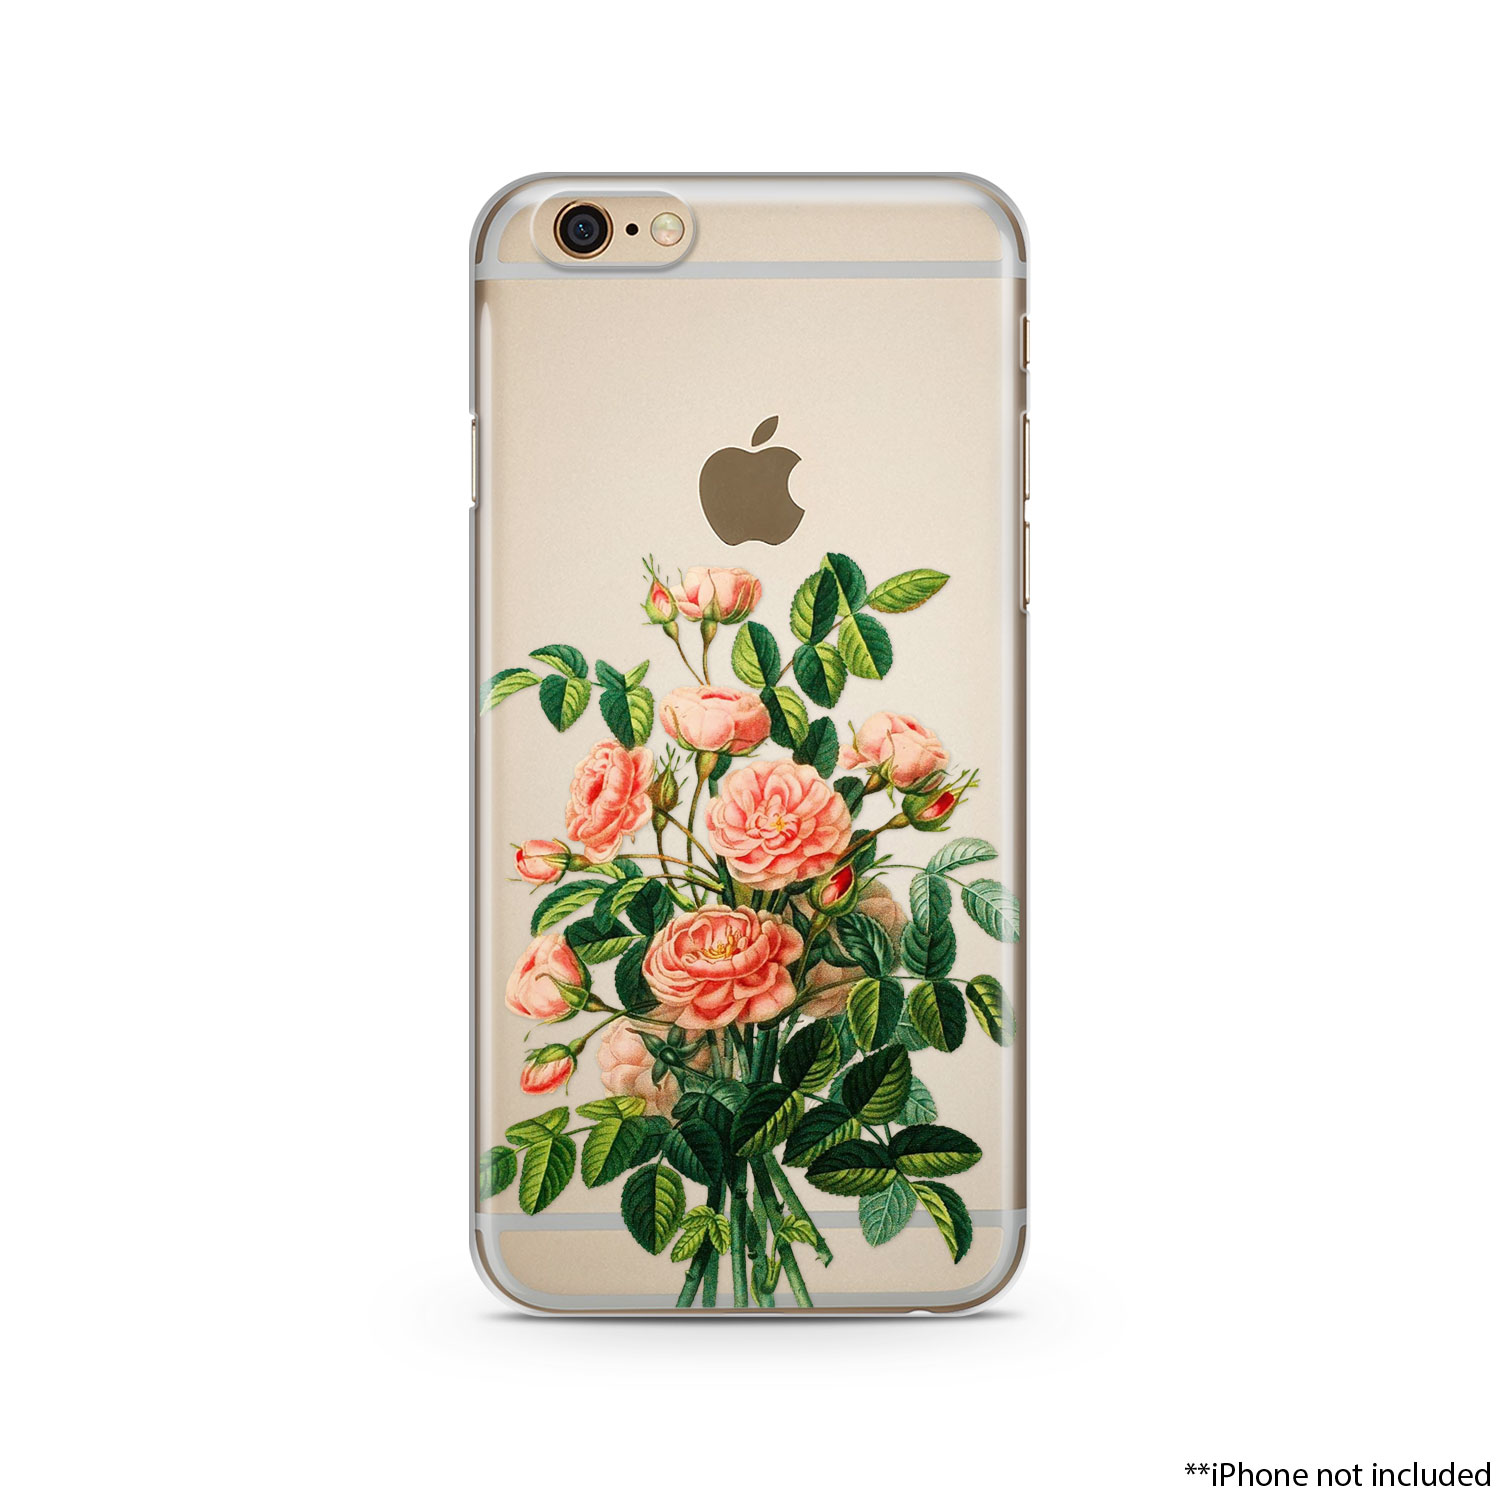 buy popular ea5a1 3512a Pink Flowers iPhone Case, iPhone 6 plus case Transparent iPhone Case,  iphone 6s case, iphone 6 case, iPhone 6s plus case 002